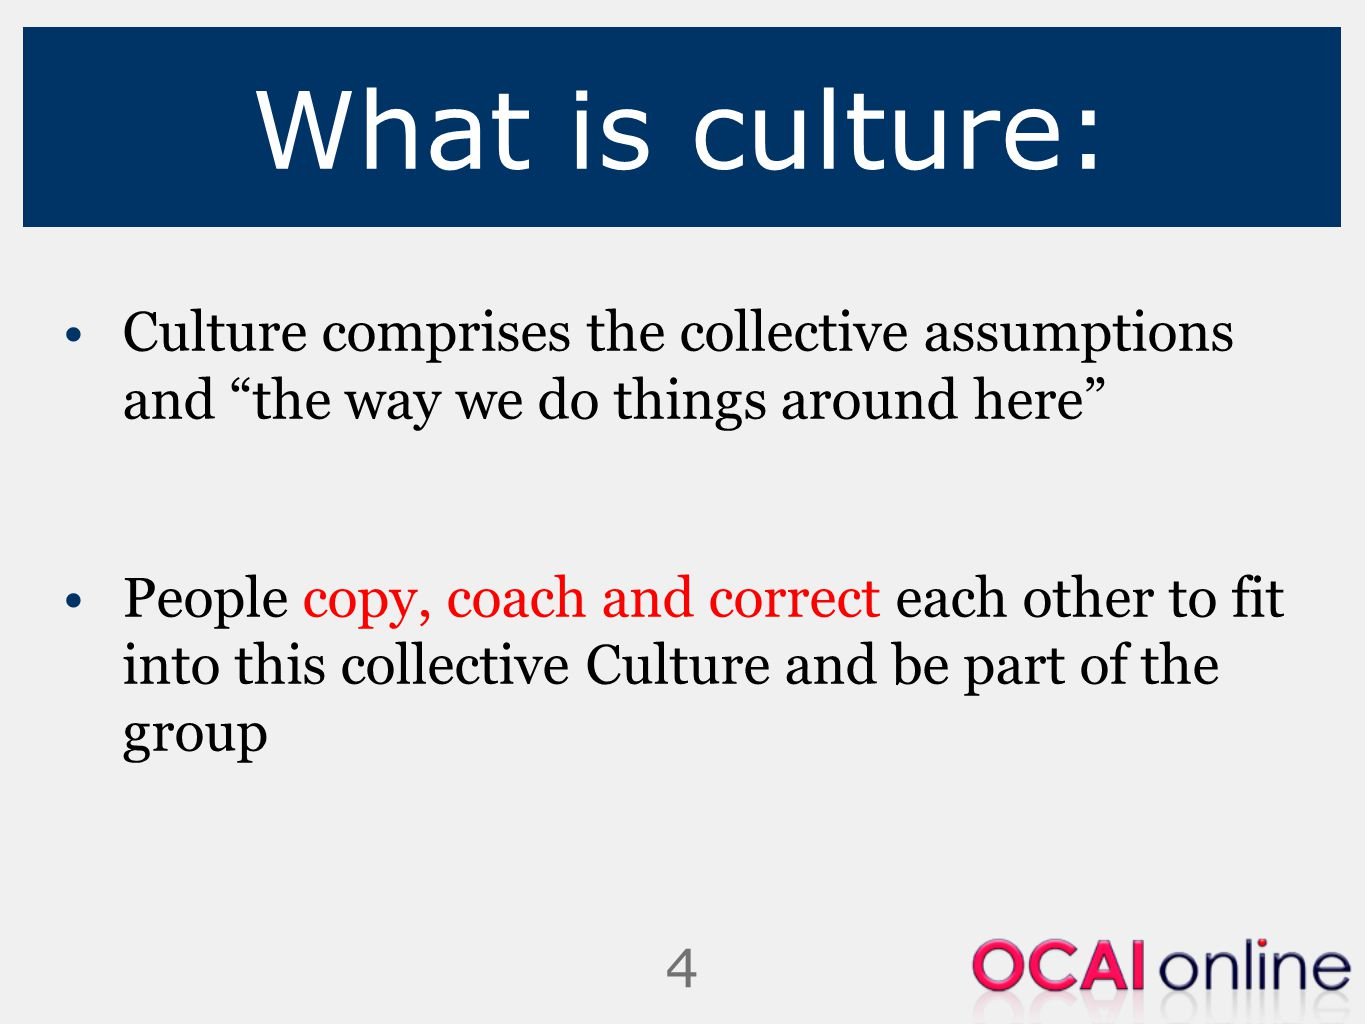 What is culture: Culture comprises the collective assumptions and the way we do things around here